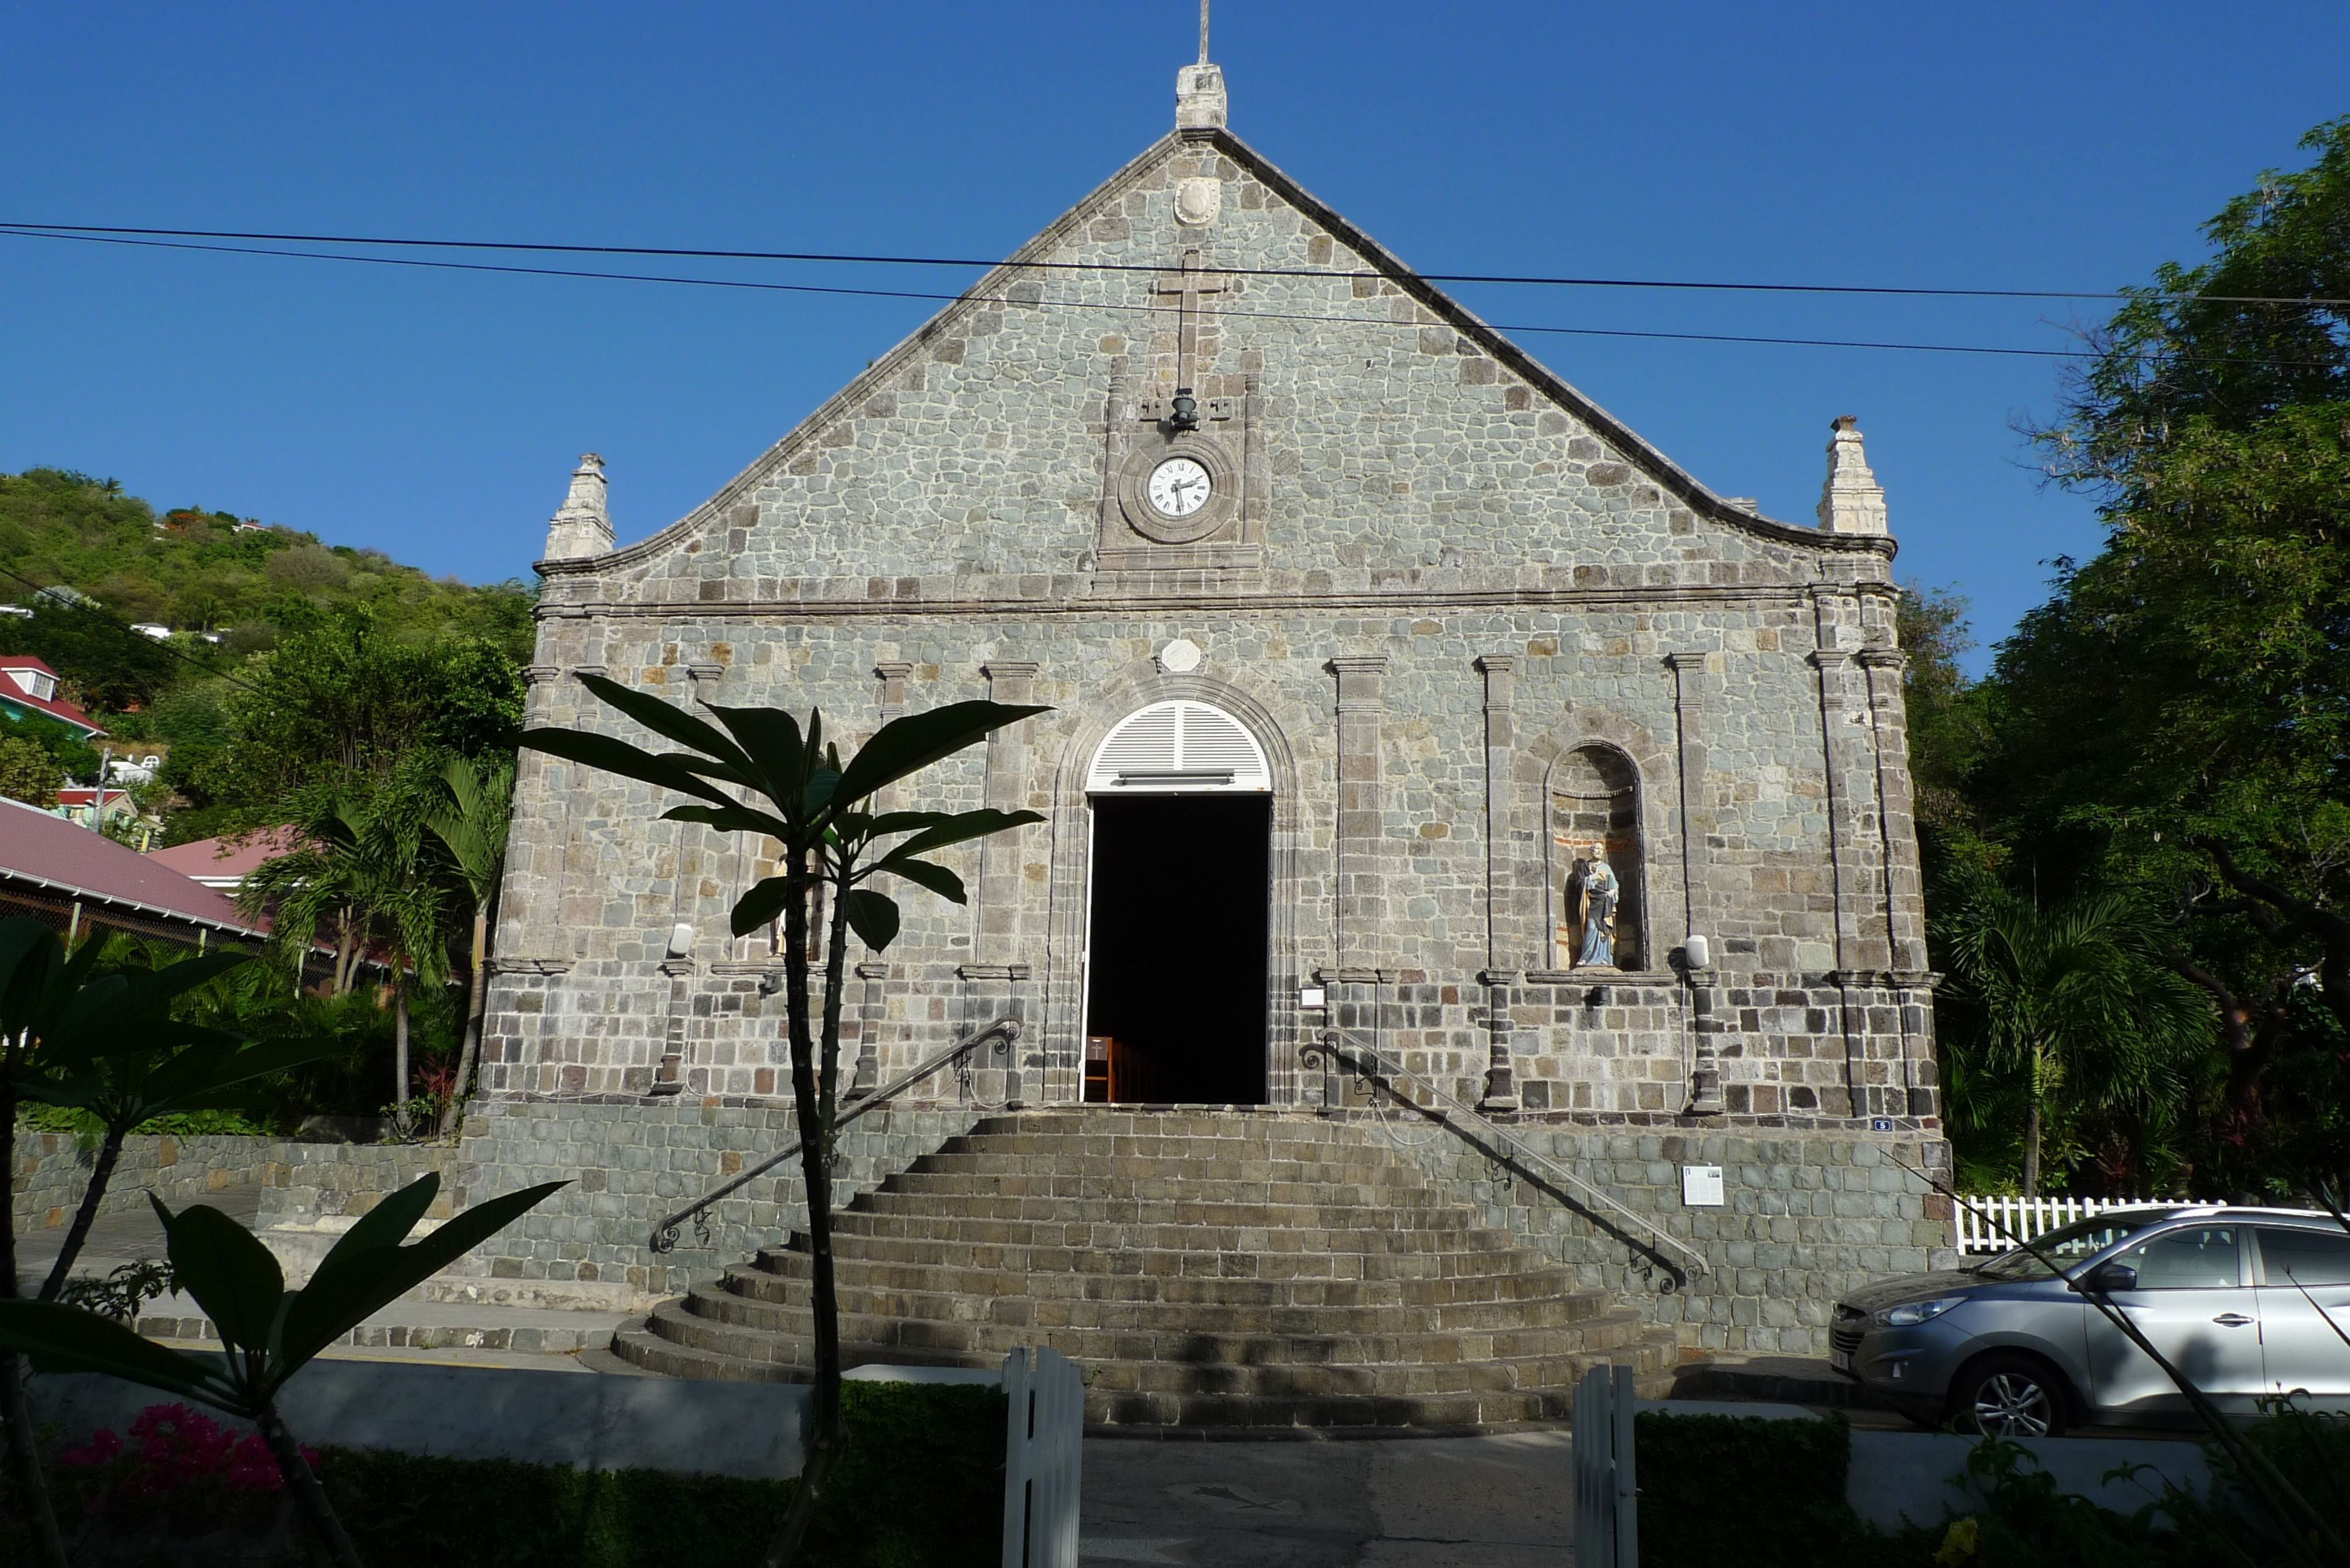 Notre Dame de l'Assumption built in 1829 and renovated after hurricane damage in 1837. Foundations are more than 2 meters to mitigate damage by waves during hurricanes. Architecture is Spanish influenced, making this an unusual church in the French West Indies.